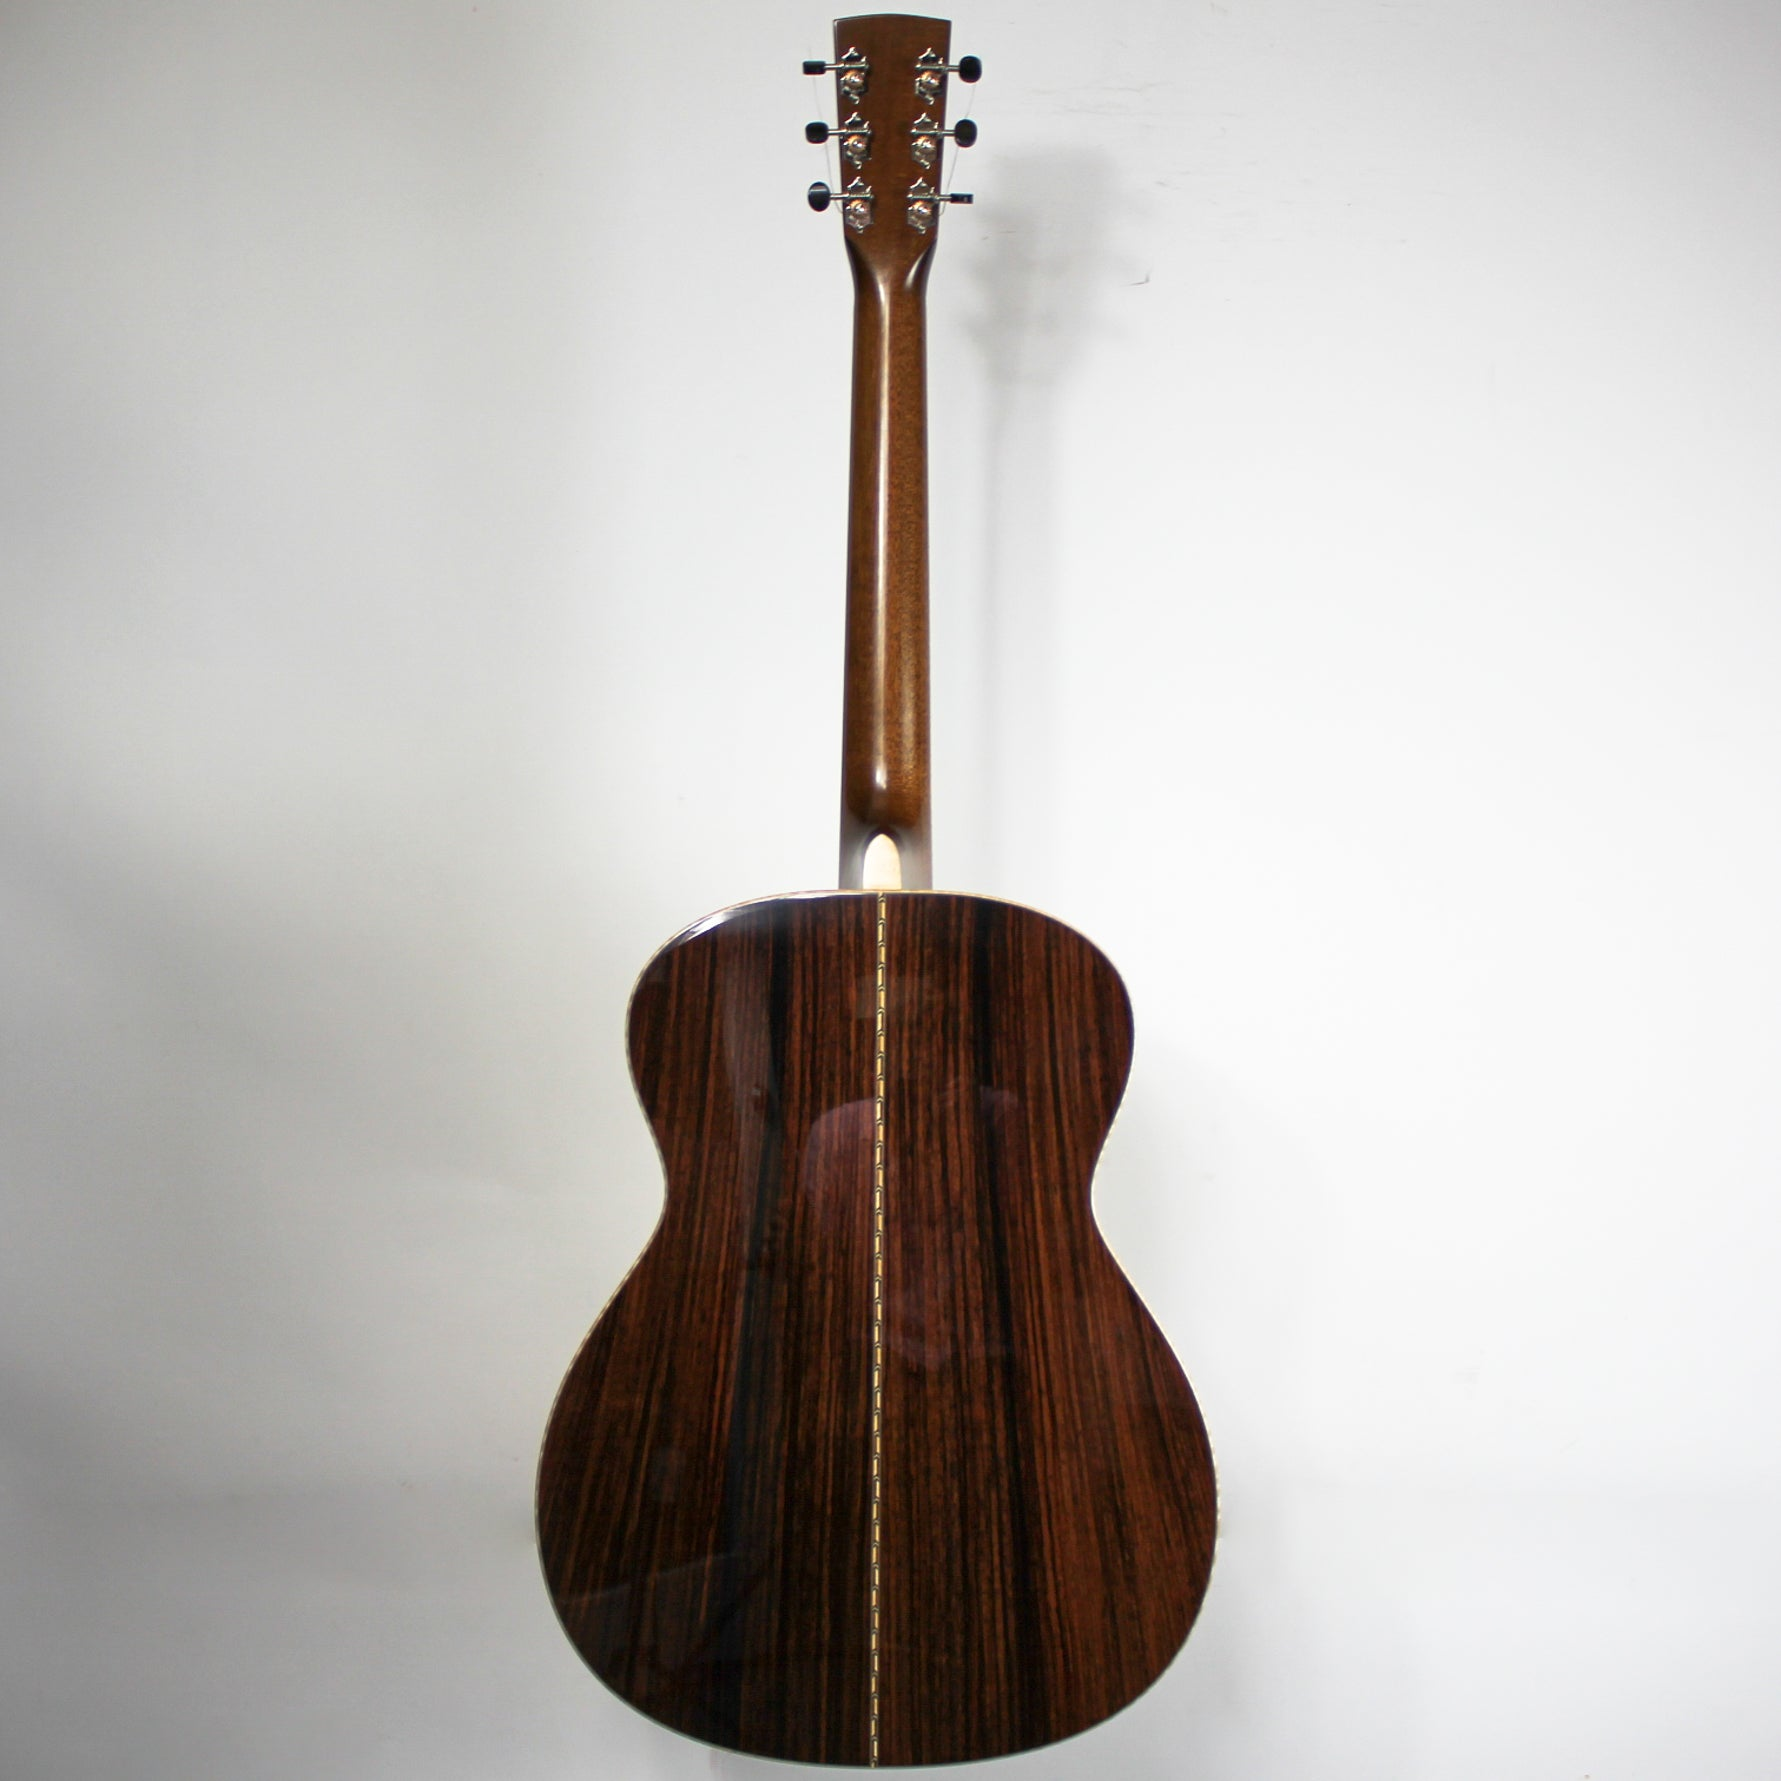 Goodall Traditional Orchestra Model, Adirondack spruce, E.I. rosewood